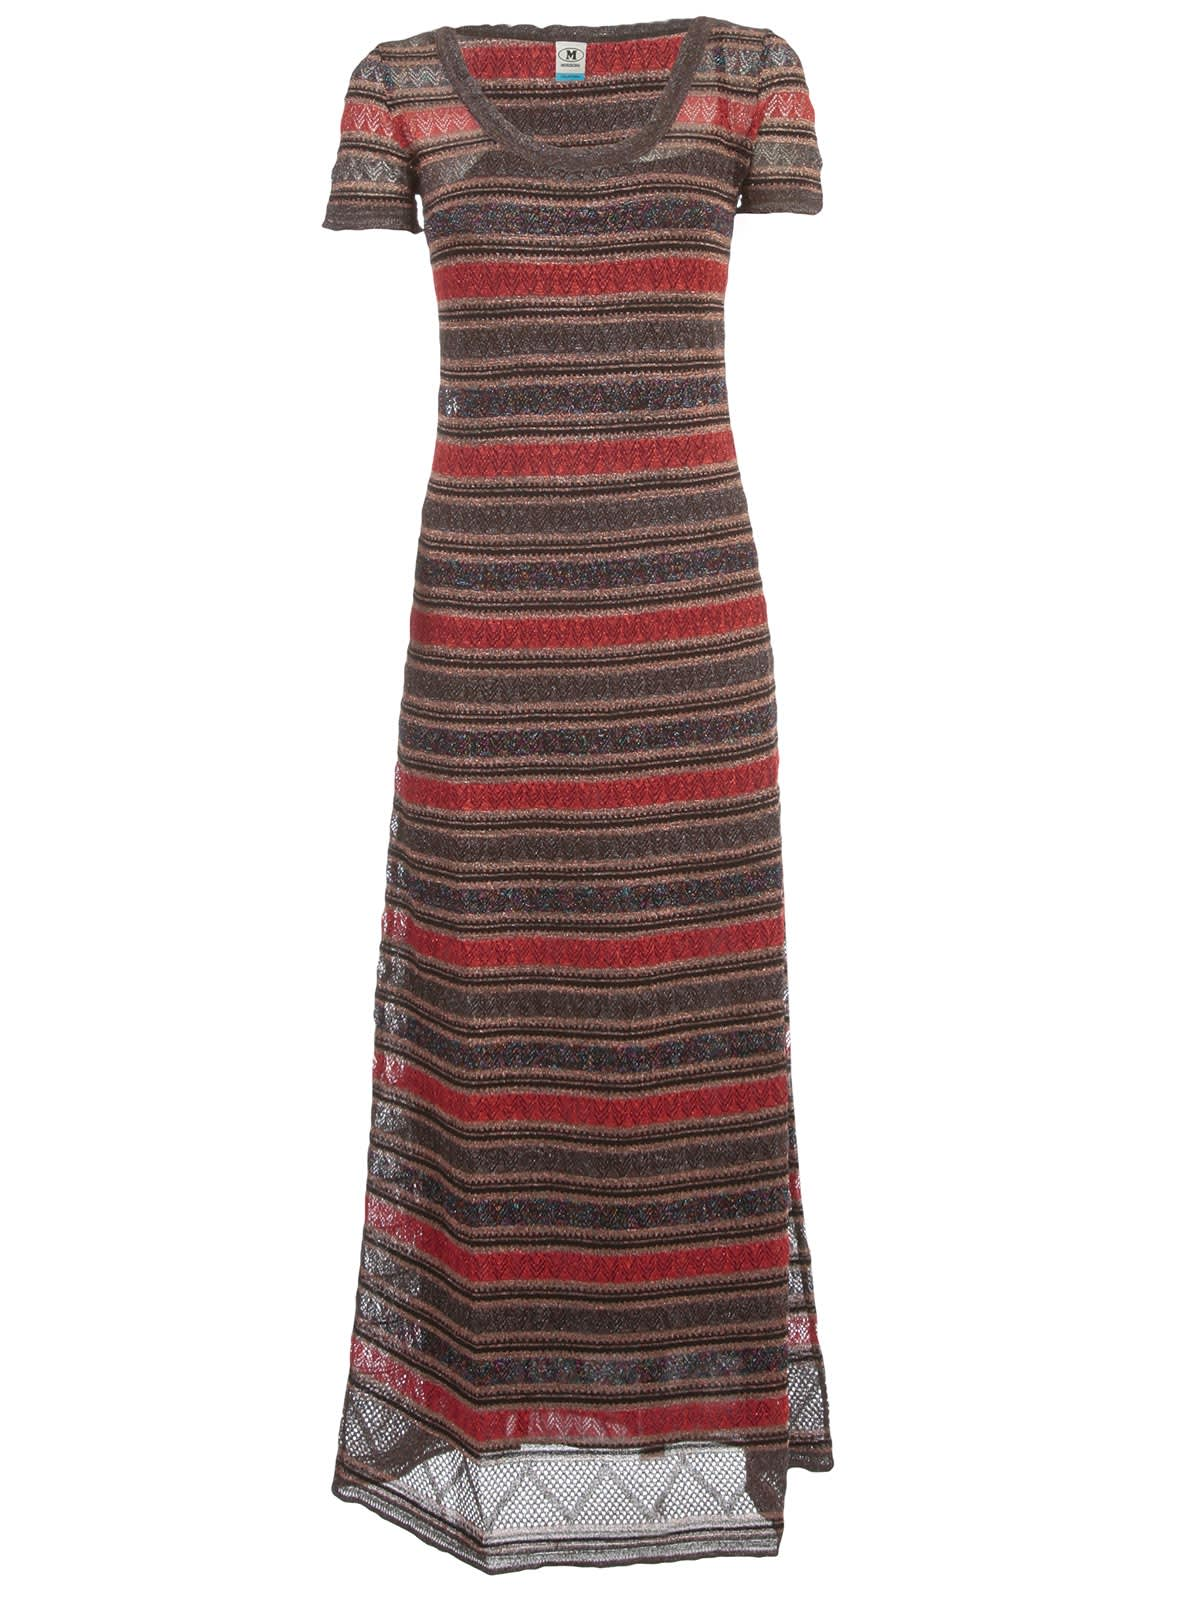 Buy M Missoni Dress S/s Wide Neck Lace Lurex online, shop M Missoni with free shipping